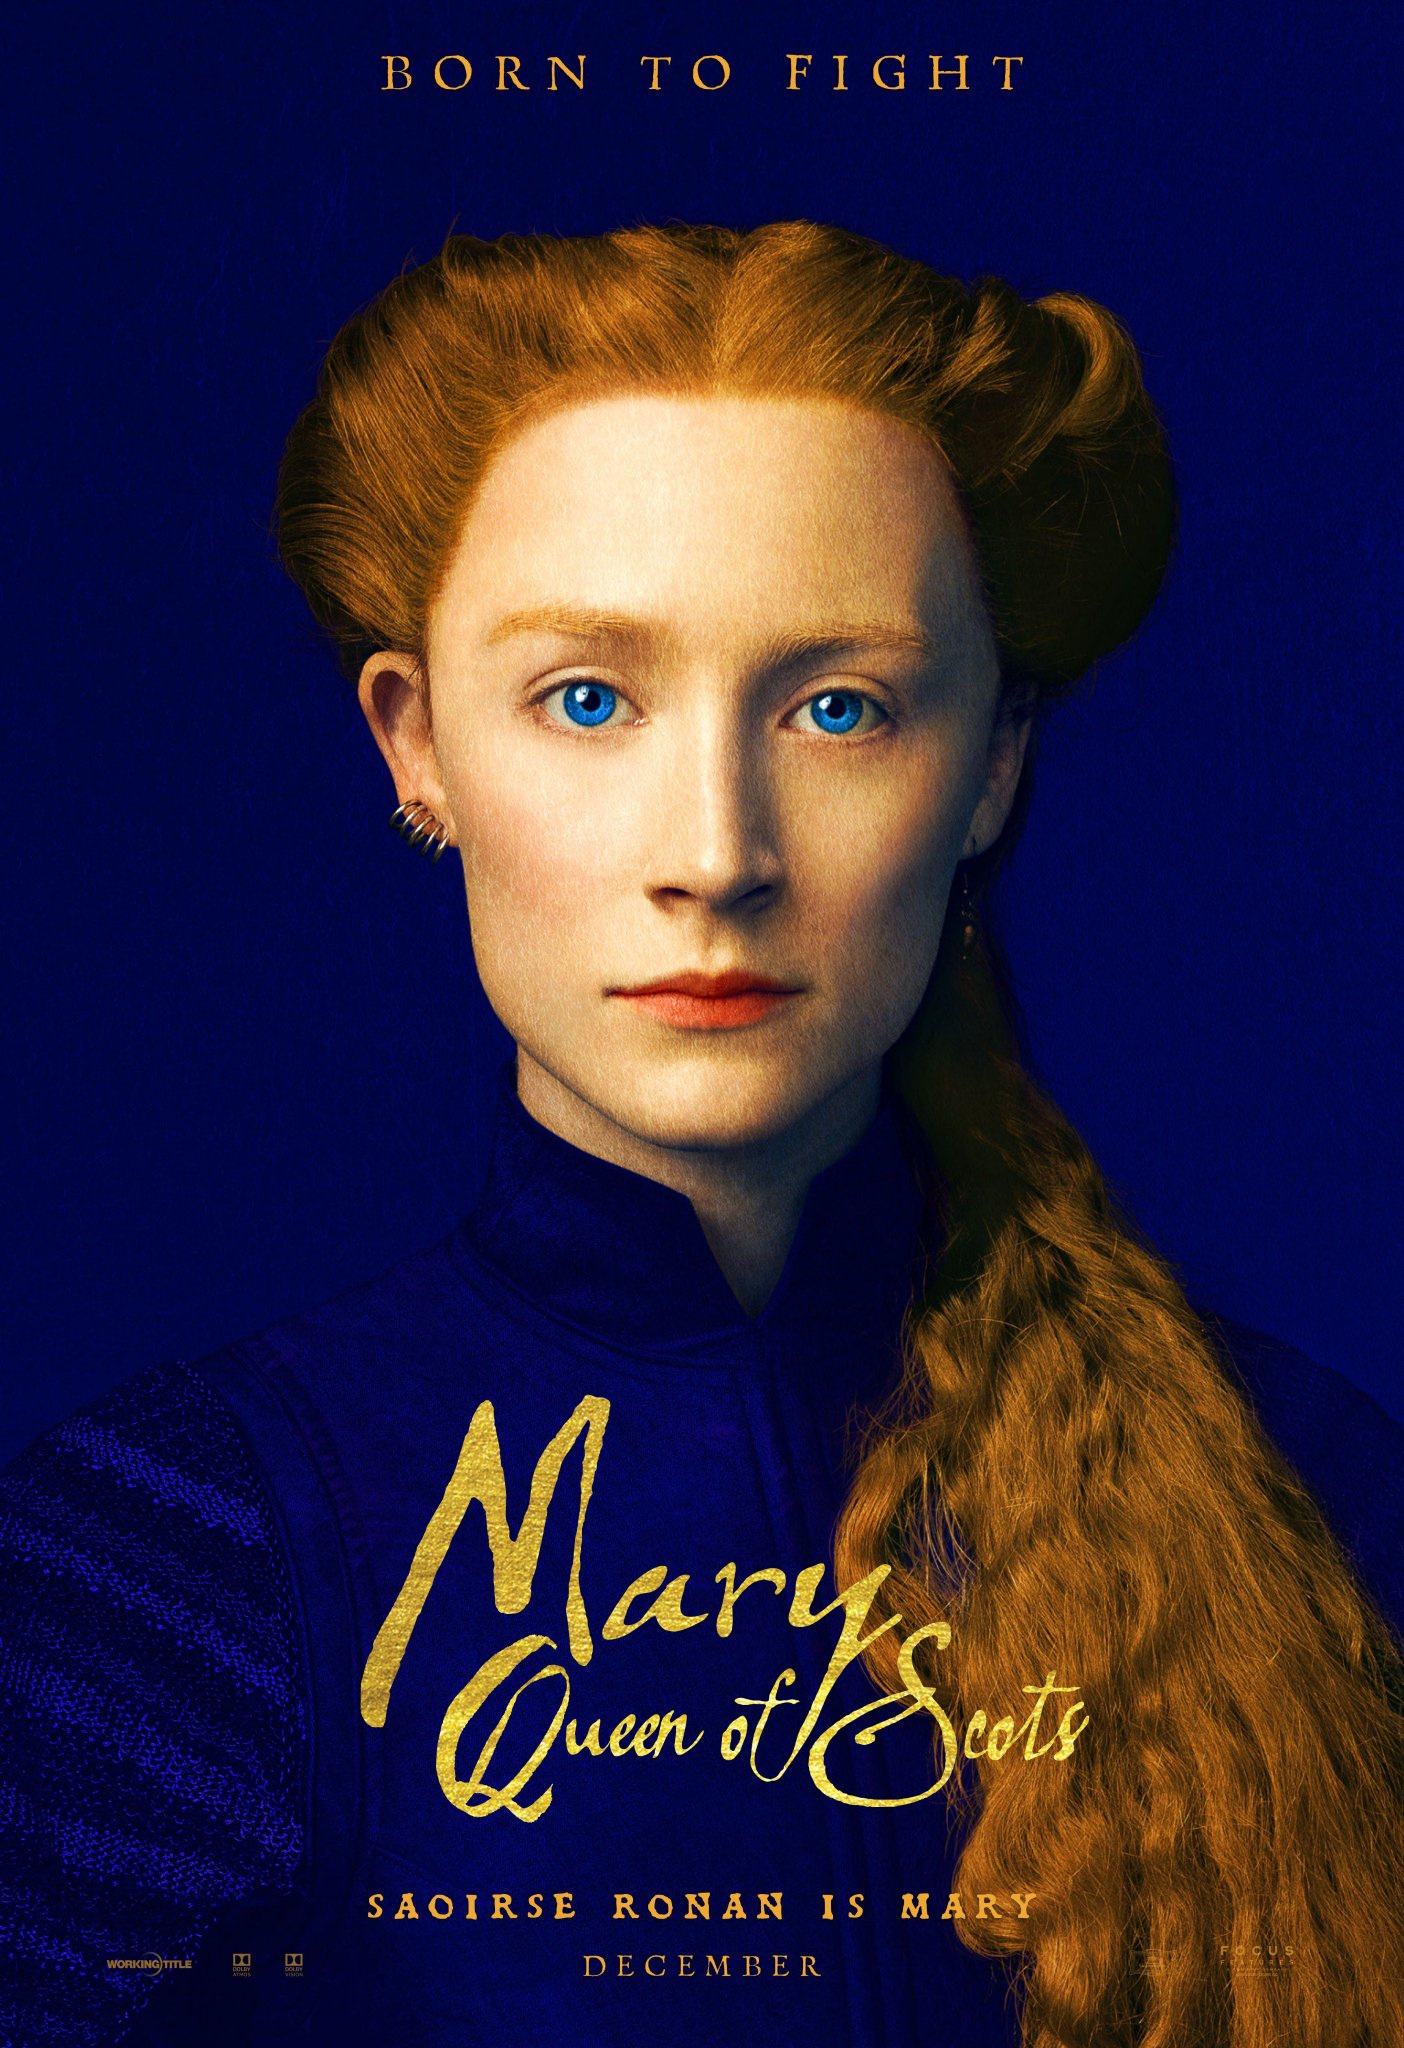 Queens �� New #MaryQueenofScots posters featuring #SaoirseRonan and @MargotRobbie. https://t.co/OLIYTI6S22 https://t.co/wh6asOMjob